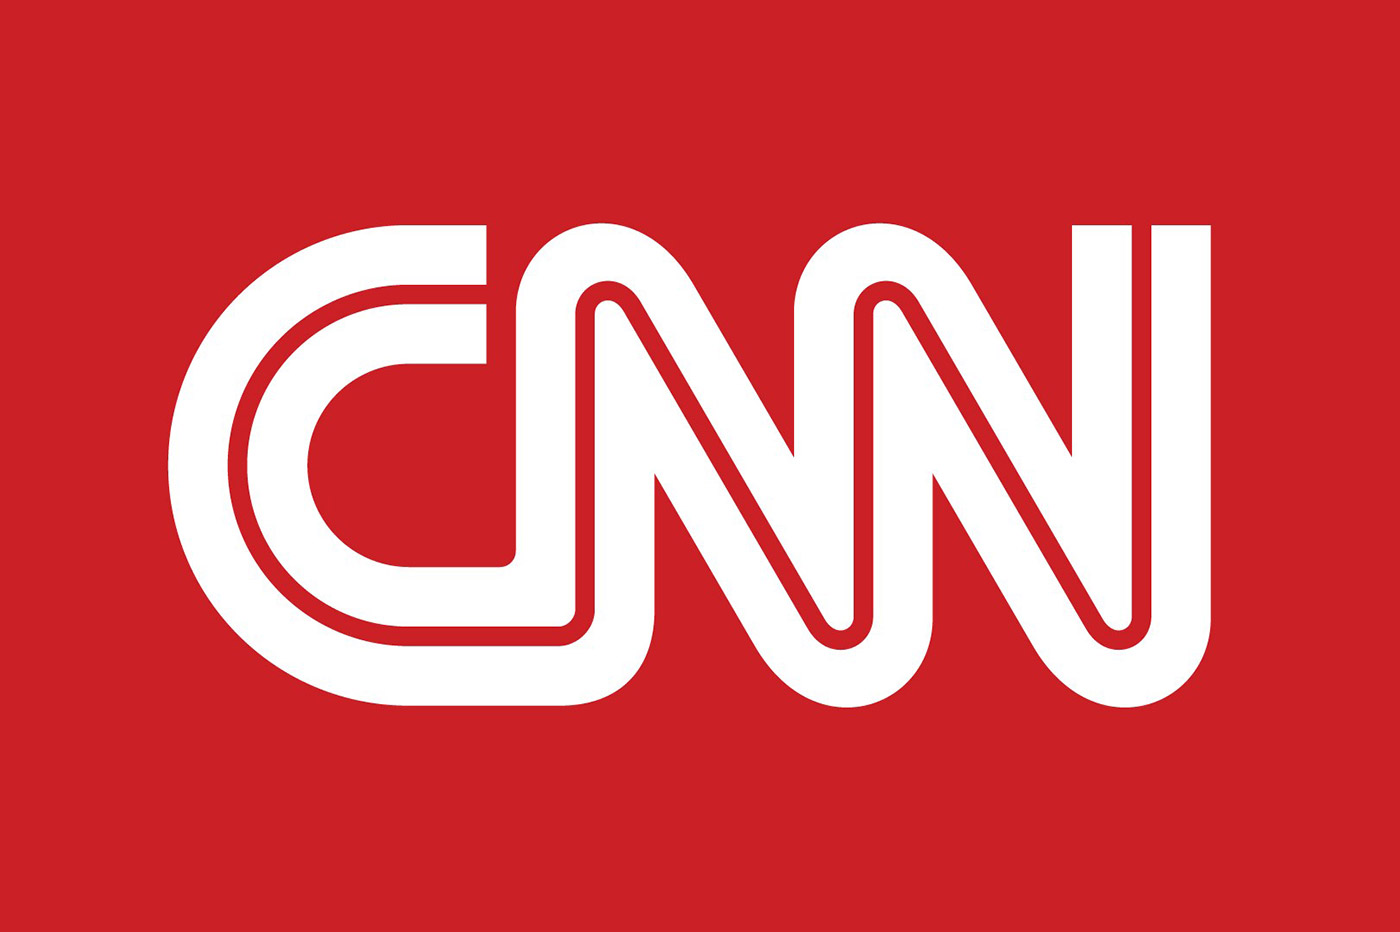 cnn-logo-white-on-red.jpg